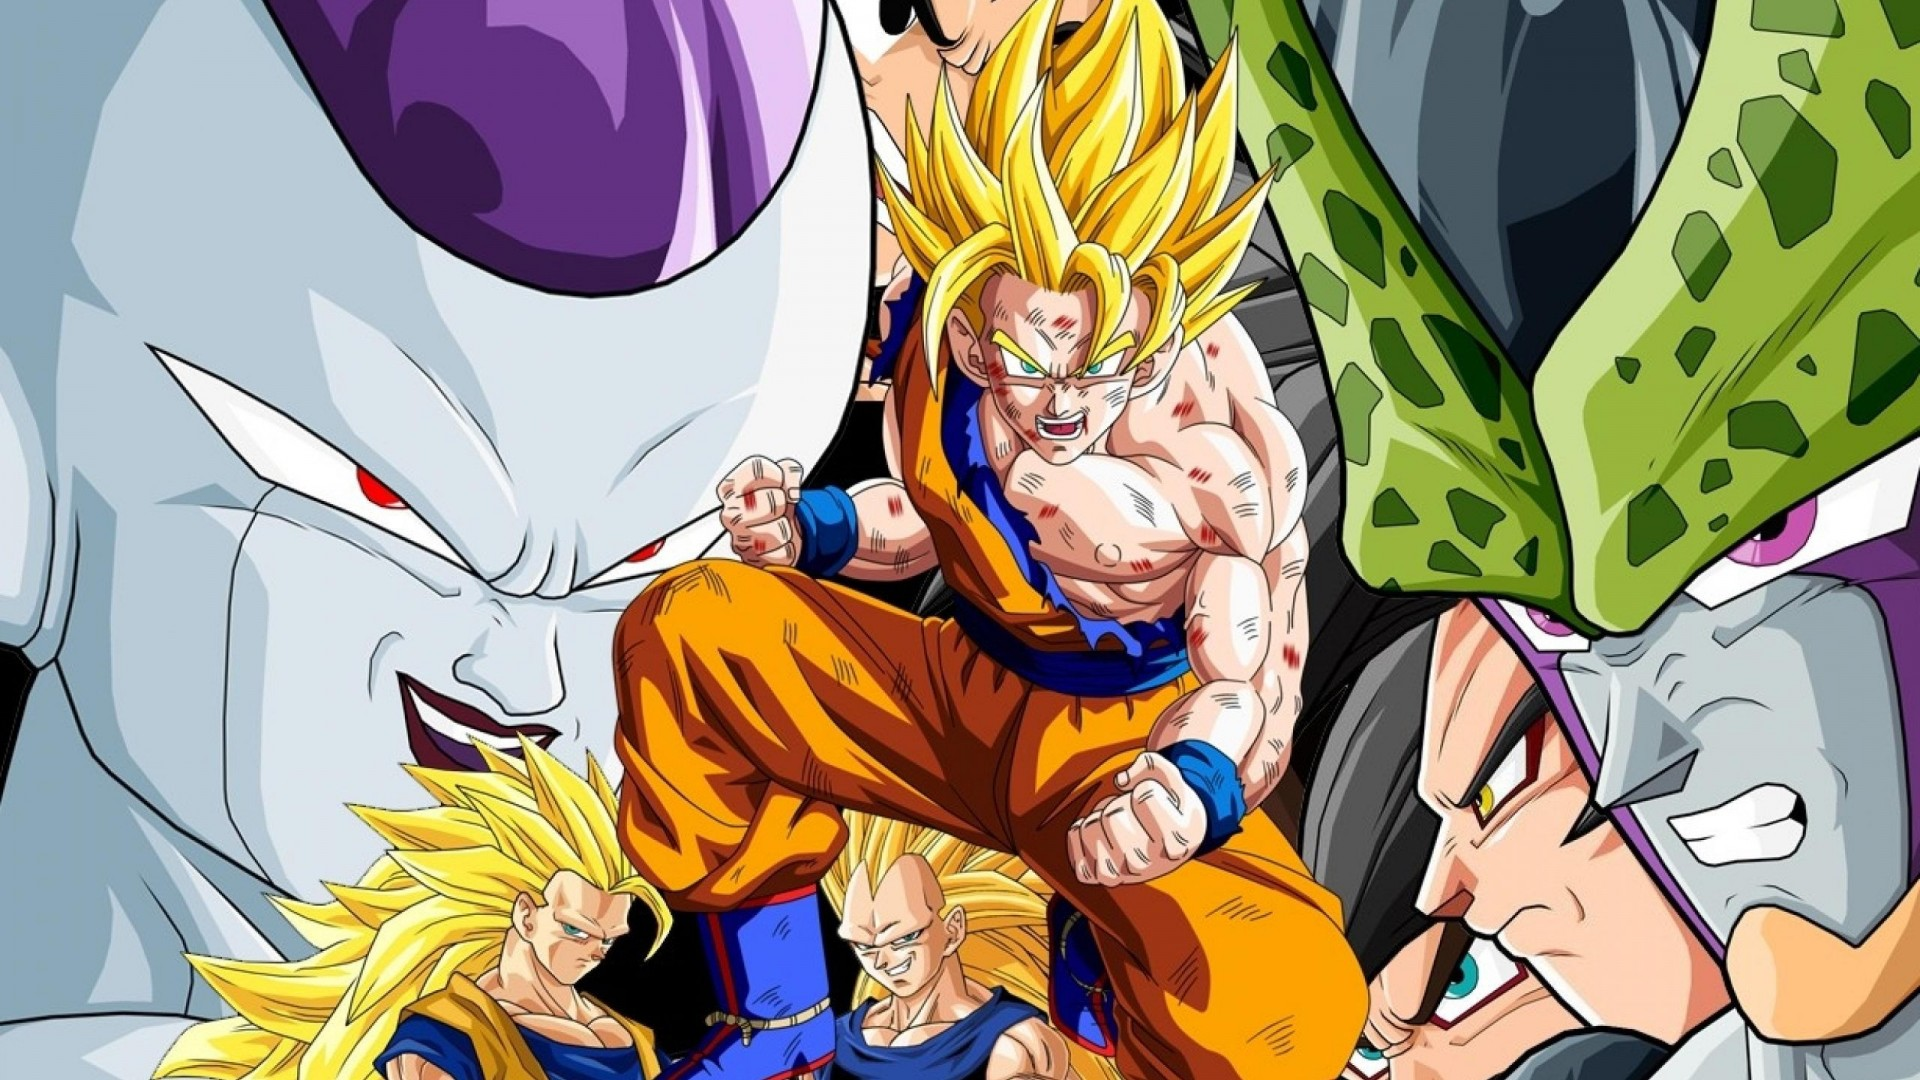 Dragon Ball Z Full HD Wallpaper And Background Image